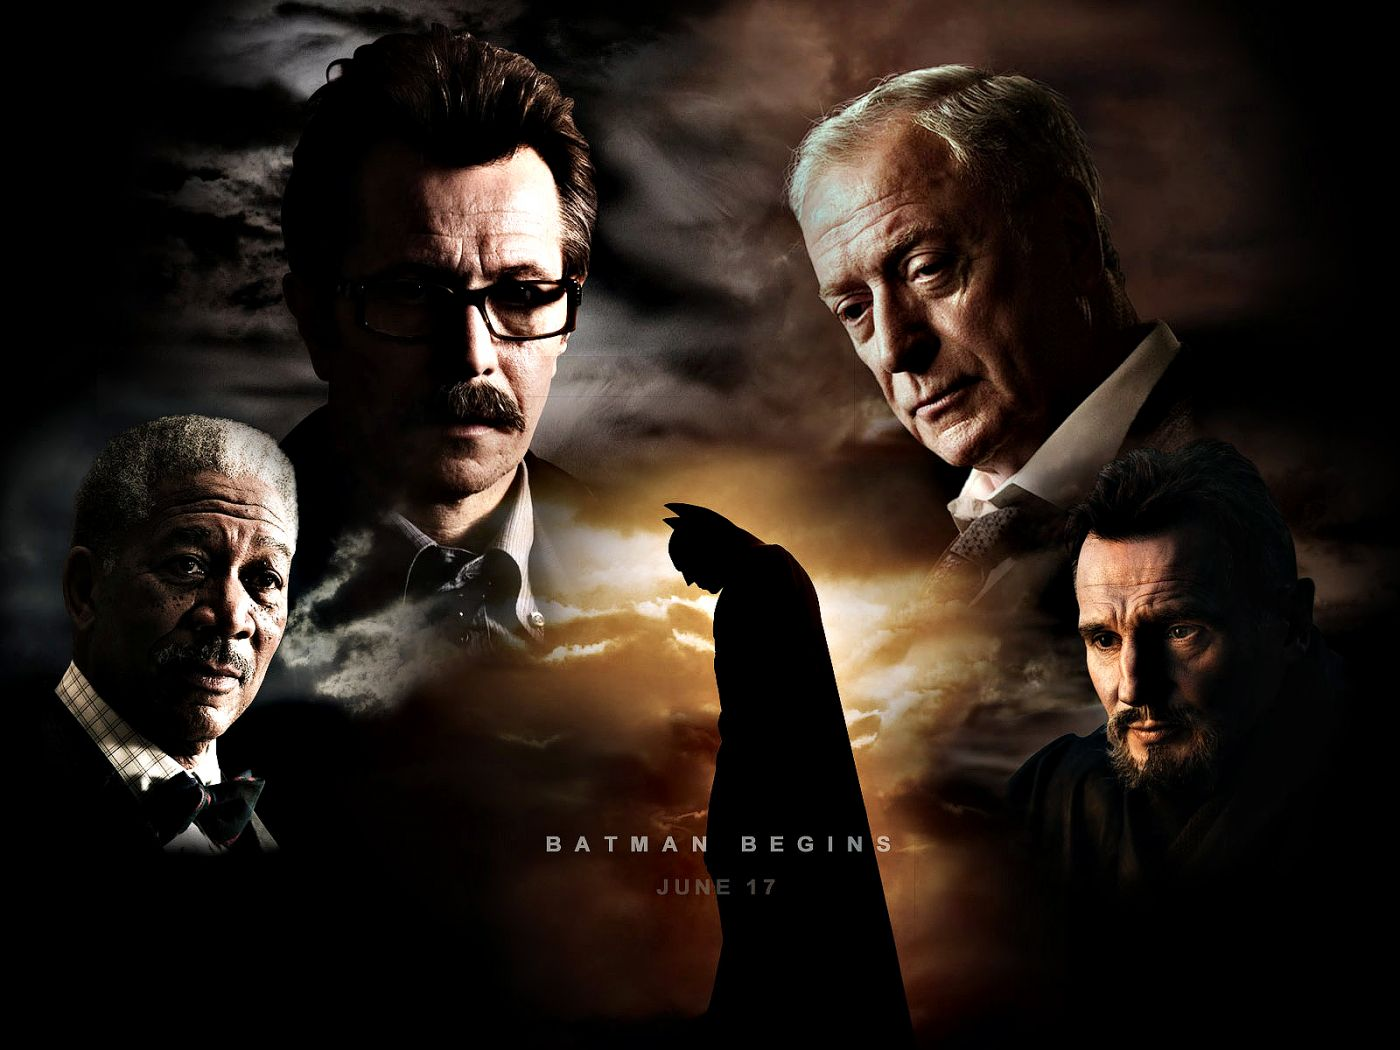 Batman Begins Characters Collage Wallpaper 1400x1050